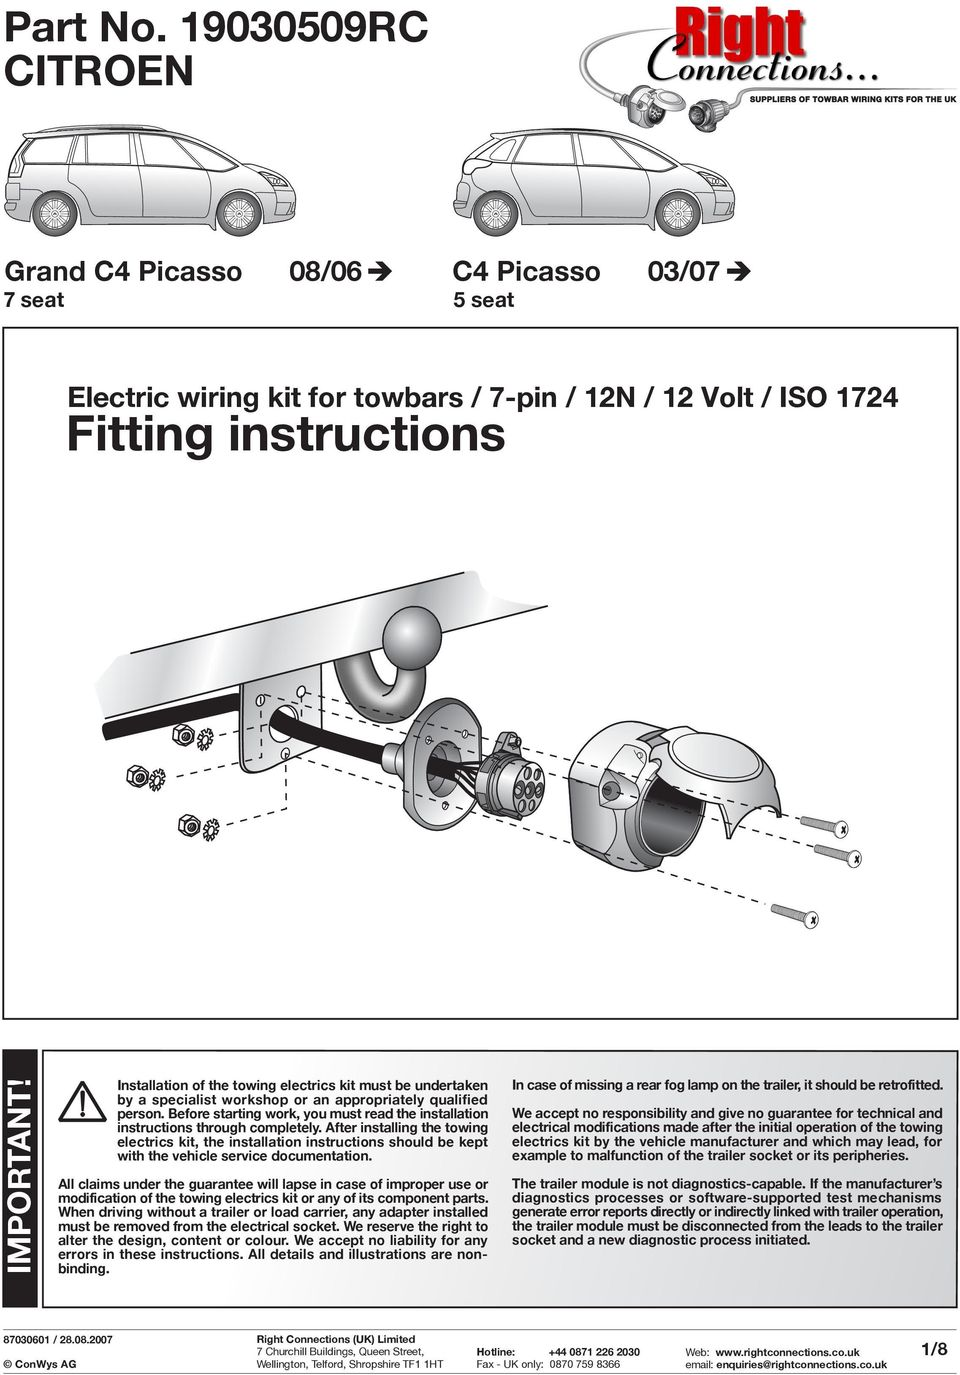 Fitting Instructions Part No Rc Citroen Important Grand C4 Picasso Wiring Diagrams Before Starting Work You Must Read The Installation Through Completely